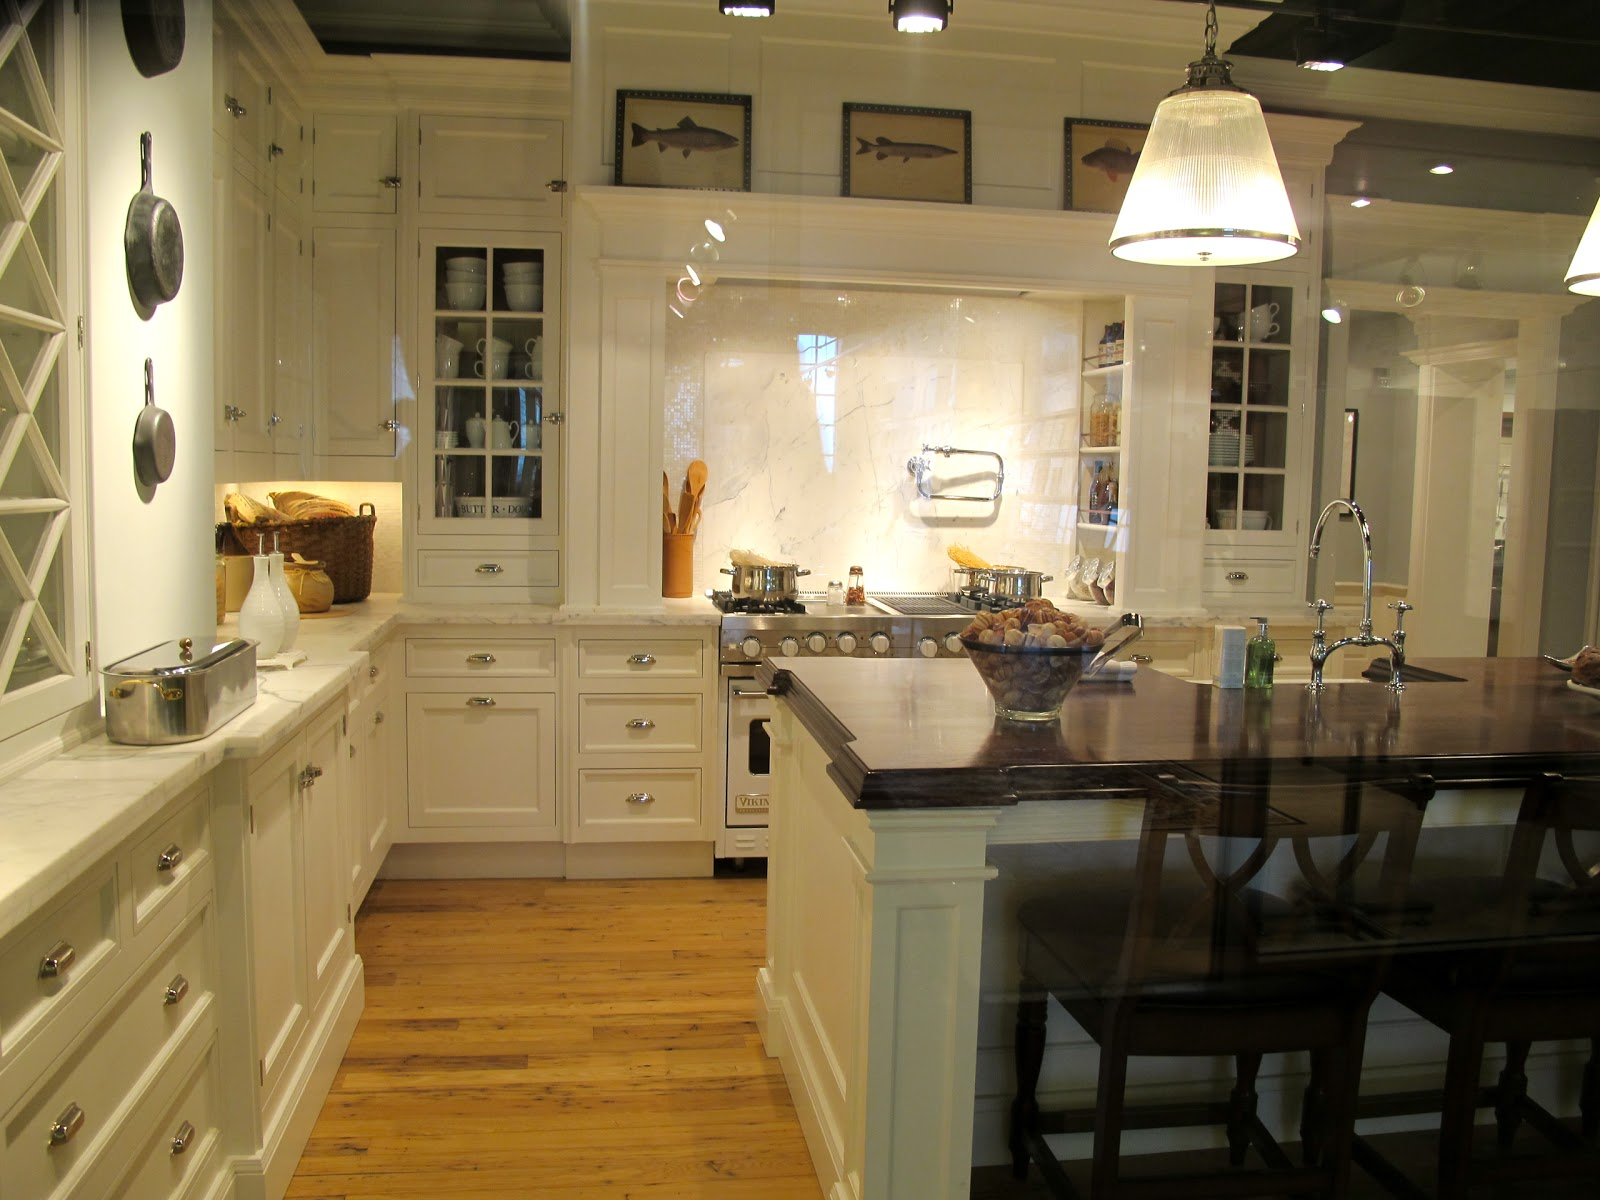 Amazing Kitchens Jenny Steffens Hobick Kitchens  The Most Amazing Kitchens